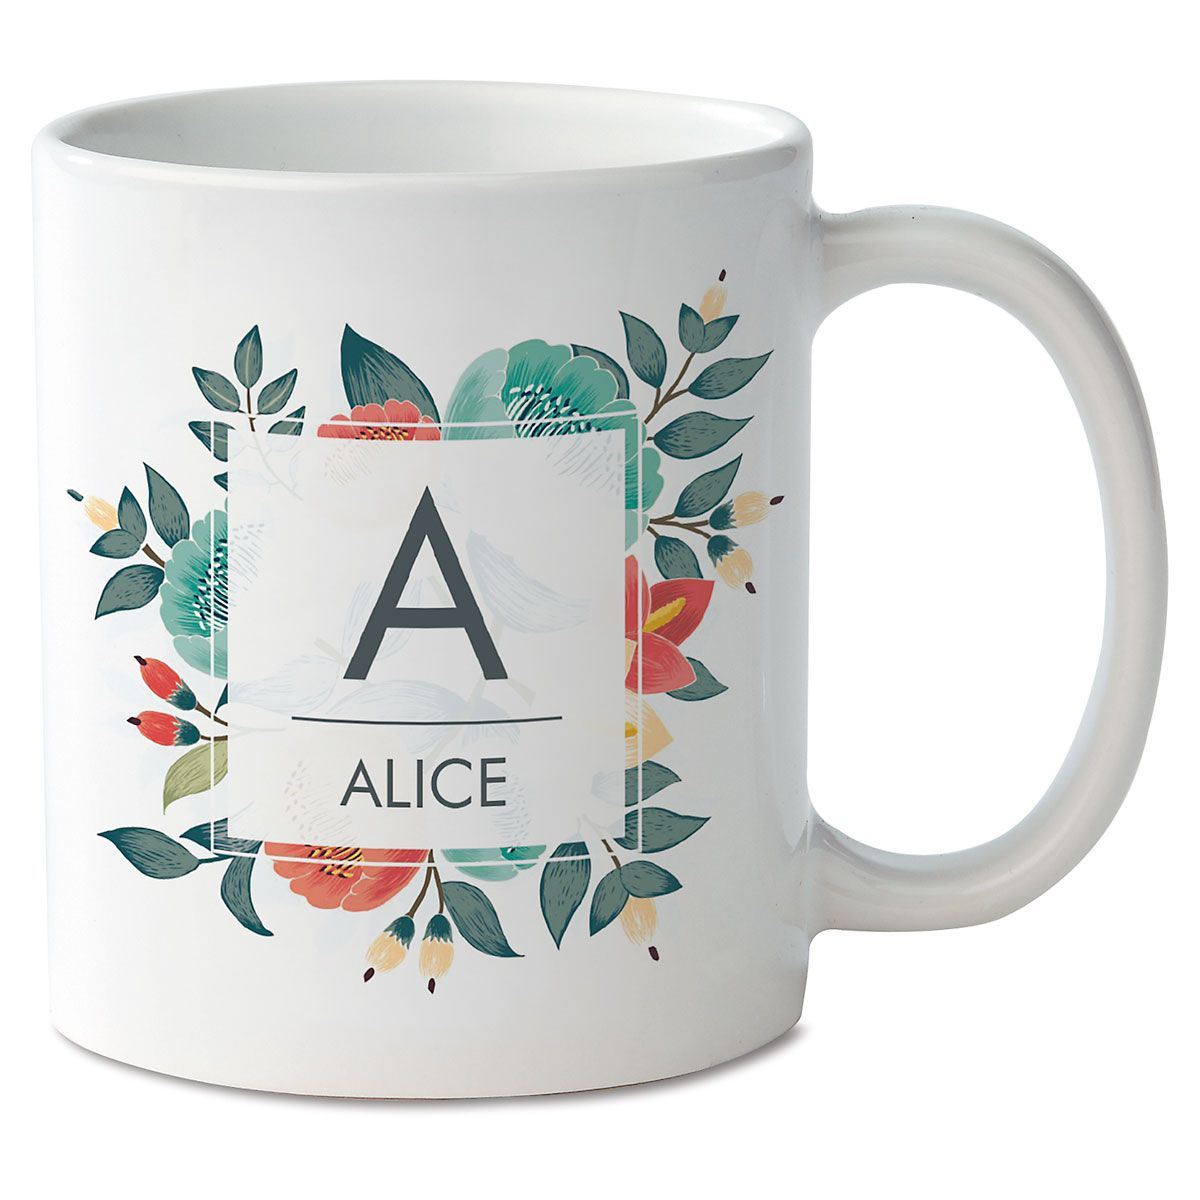 Floral Initial & Name Personalized Mug